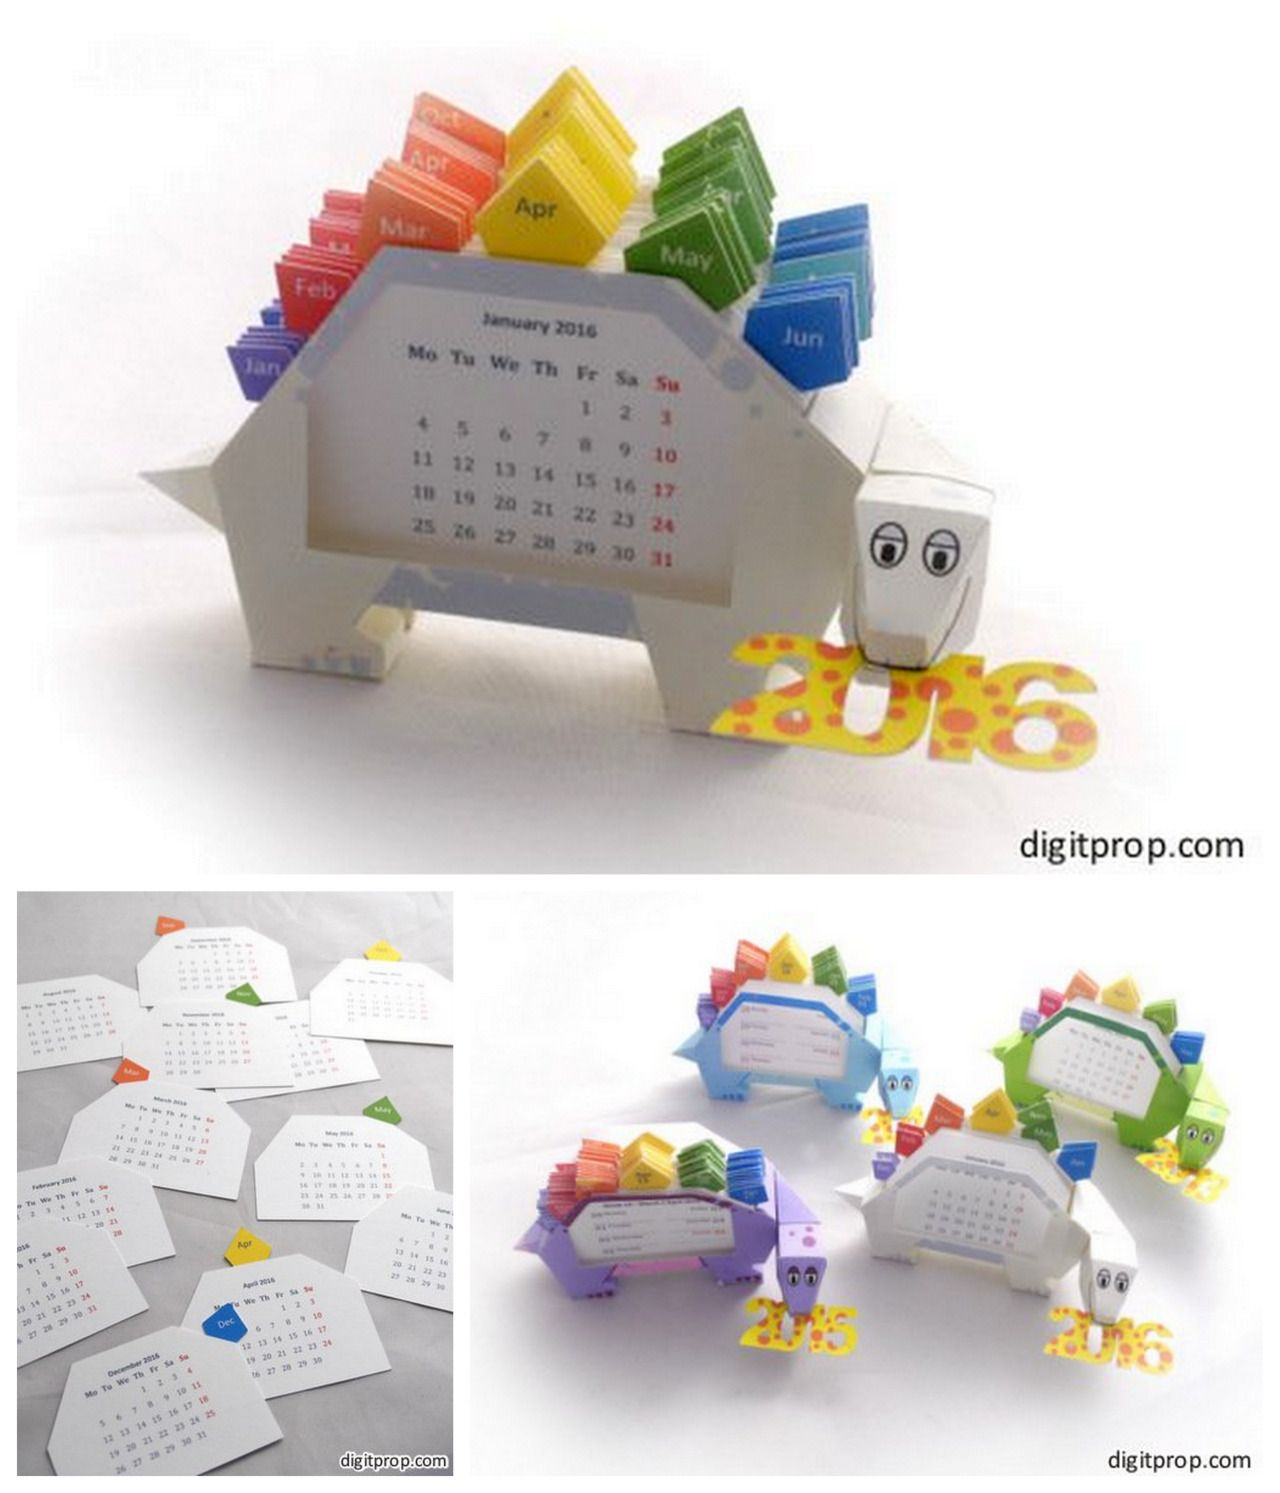 DIY 2016 3D Dinosaur Calendar Free Printable from Digitprop. Every year Digitprop comes out with a free printable stegosaurus calendar - and I post it on my blog. This year the 2016 3D Dinosaur...